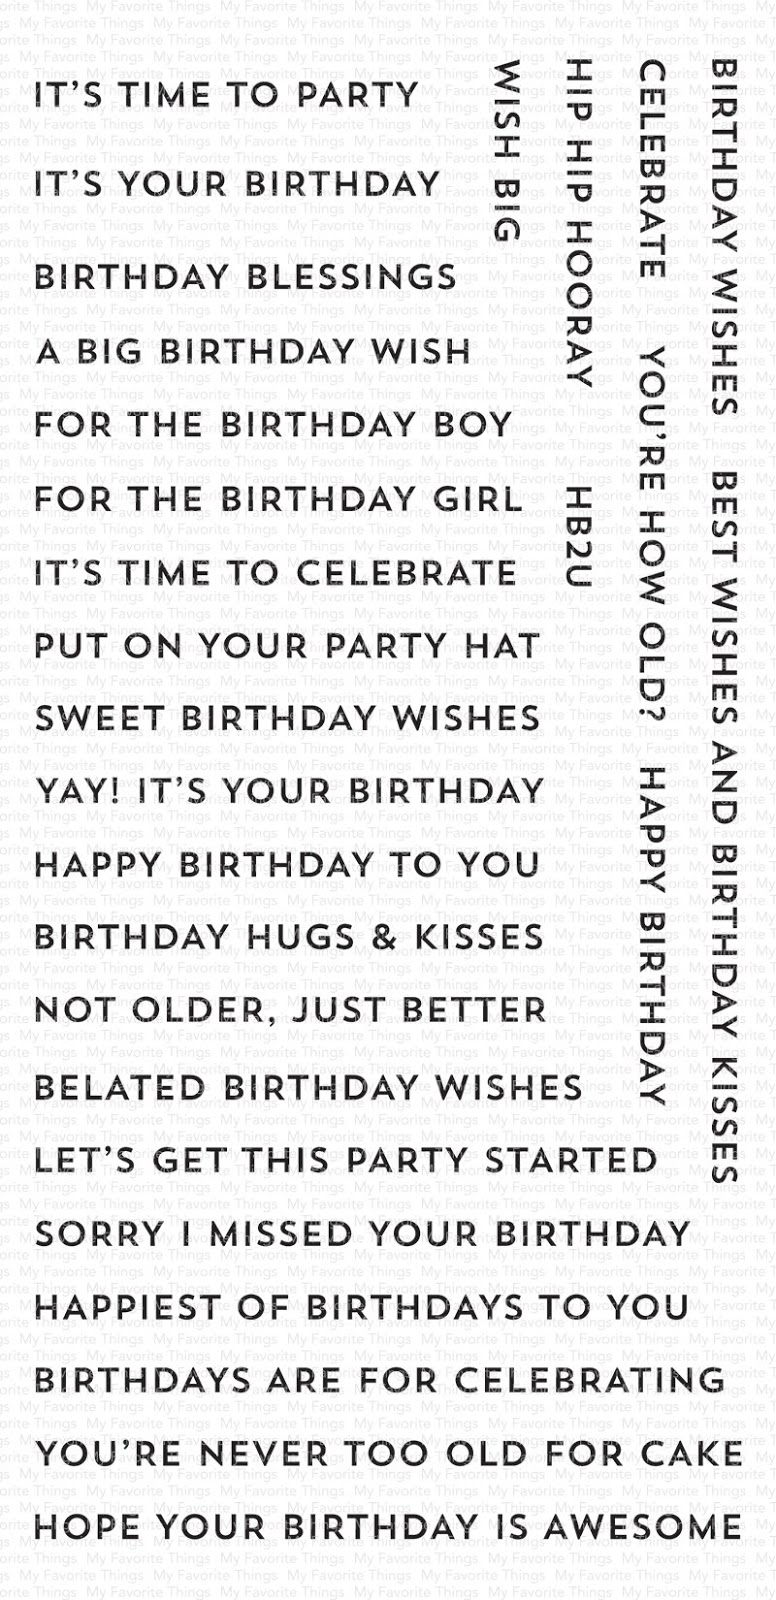 My favorite things - BITTY BIRTHDAY WISHES